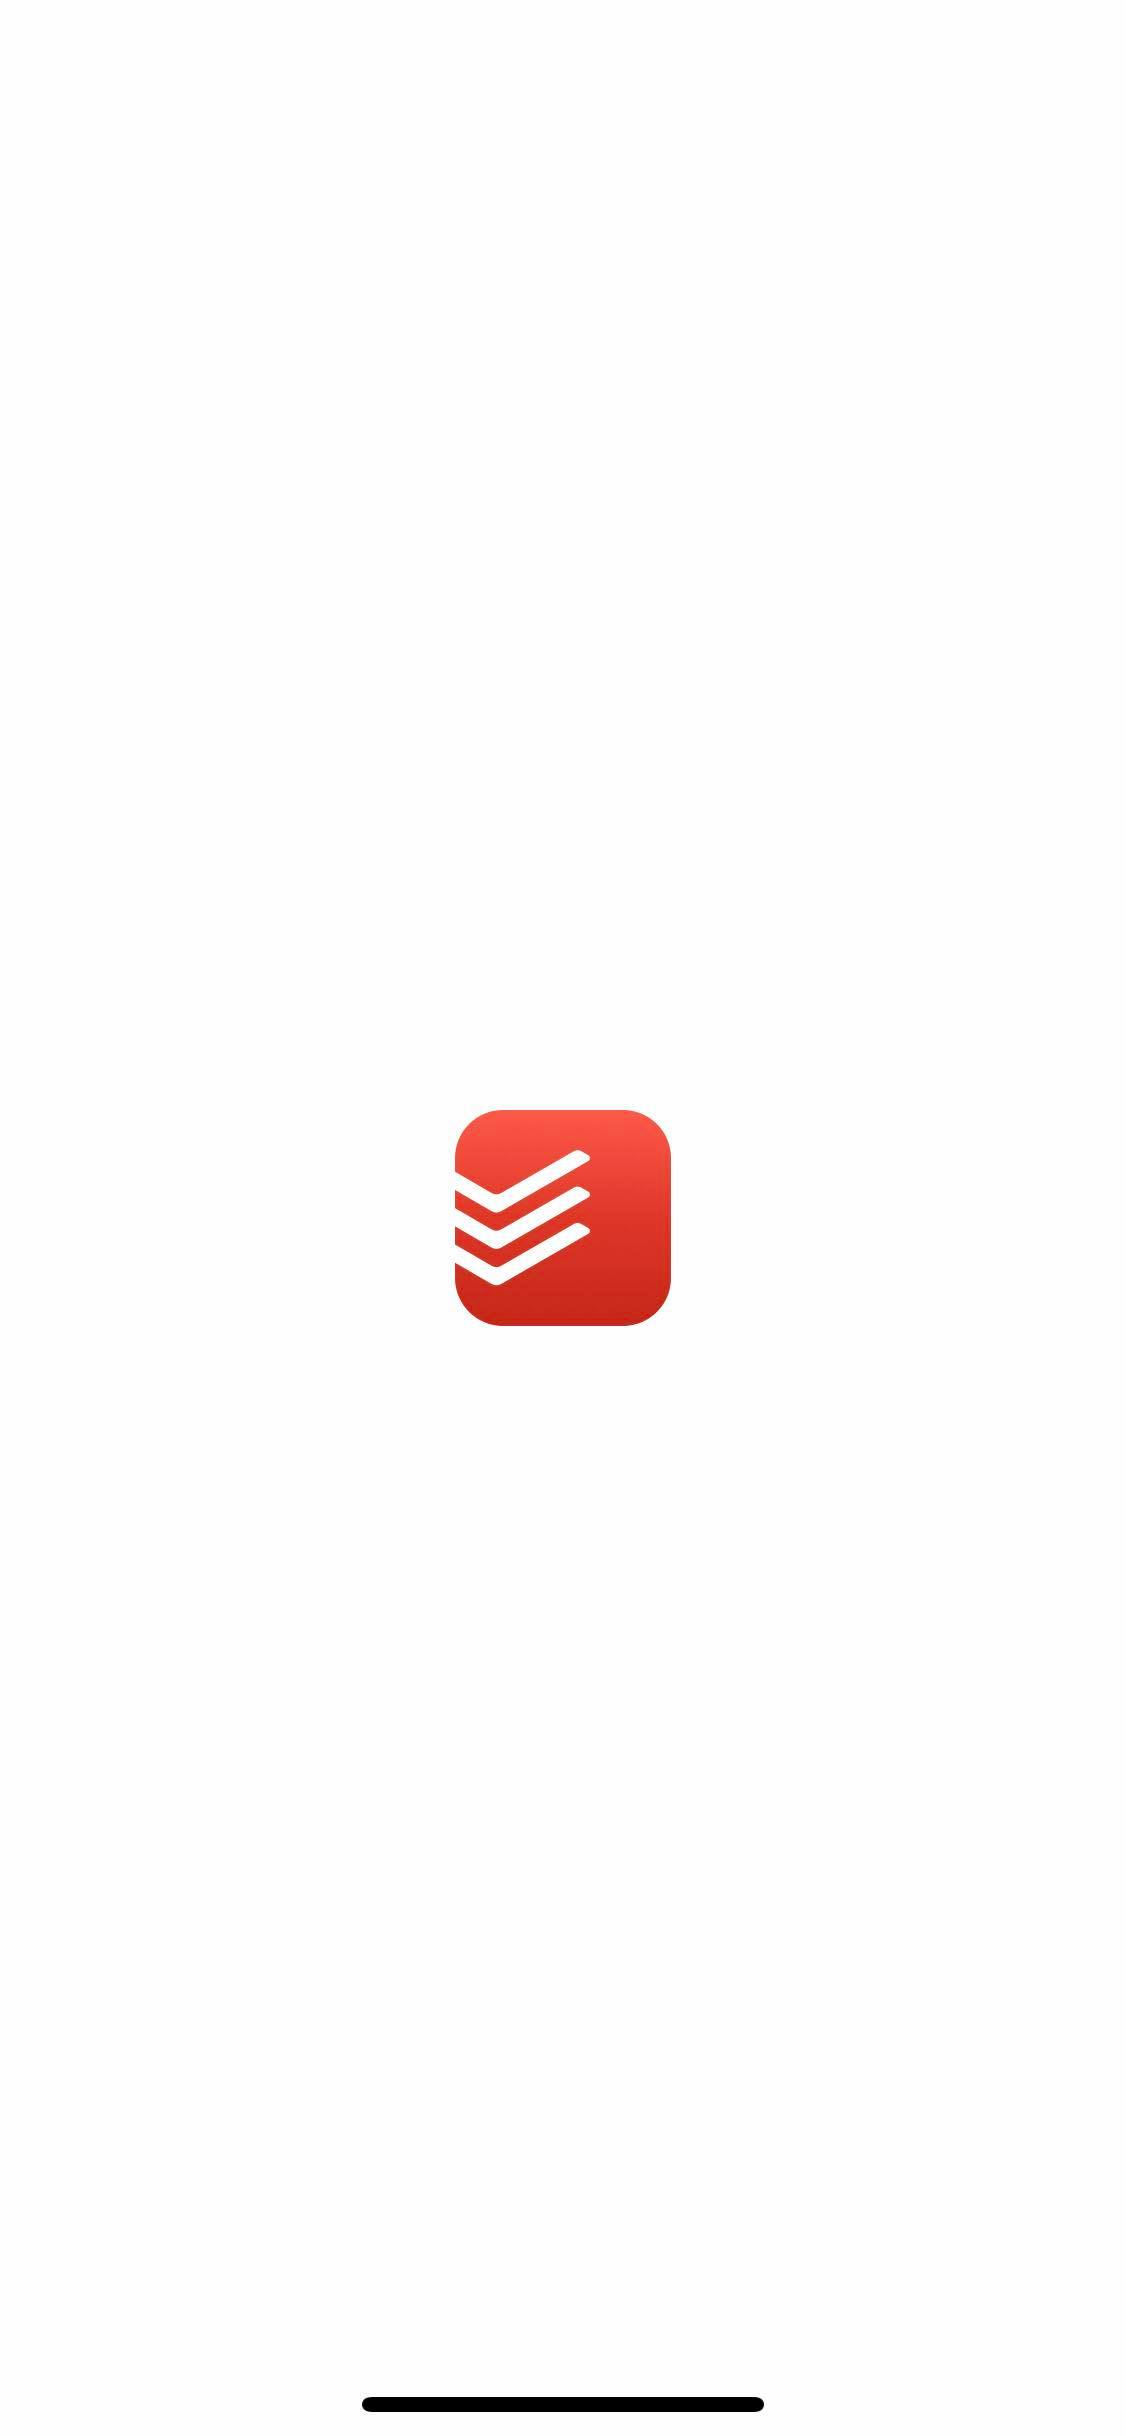 Launch Screen on iOS by Todoist from UIGarage